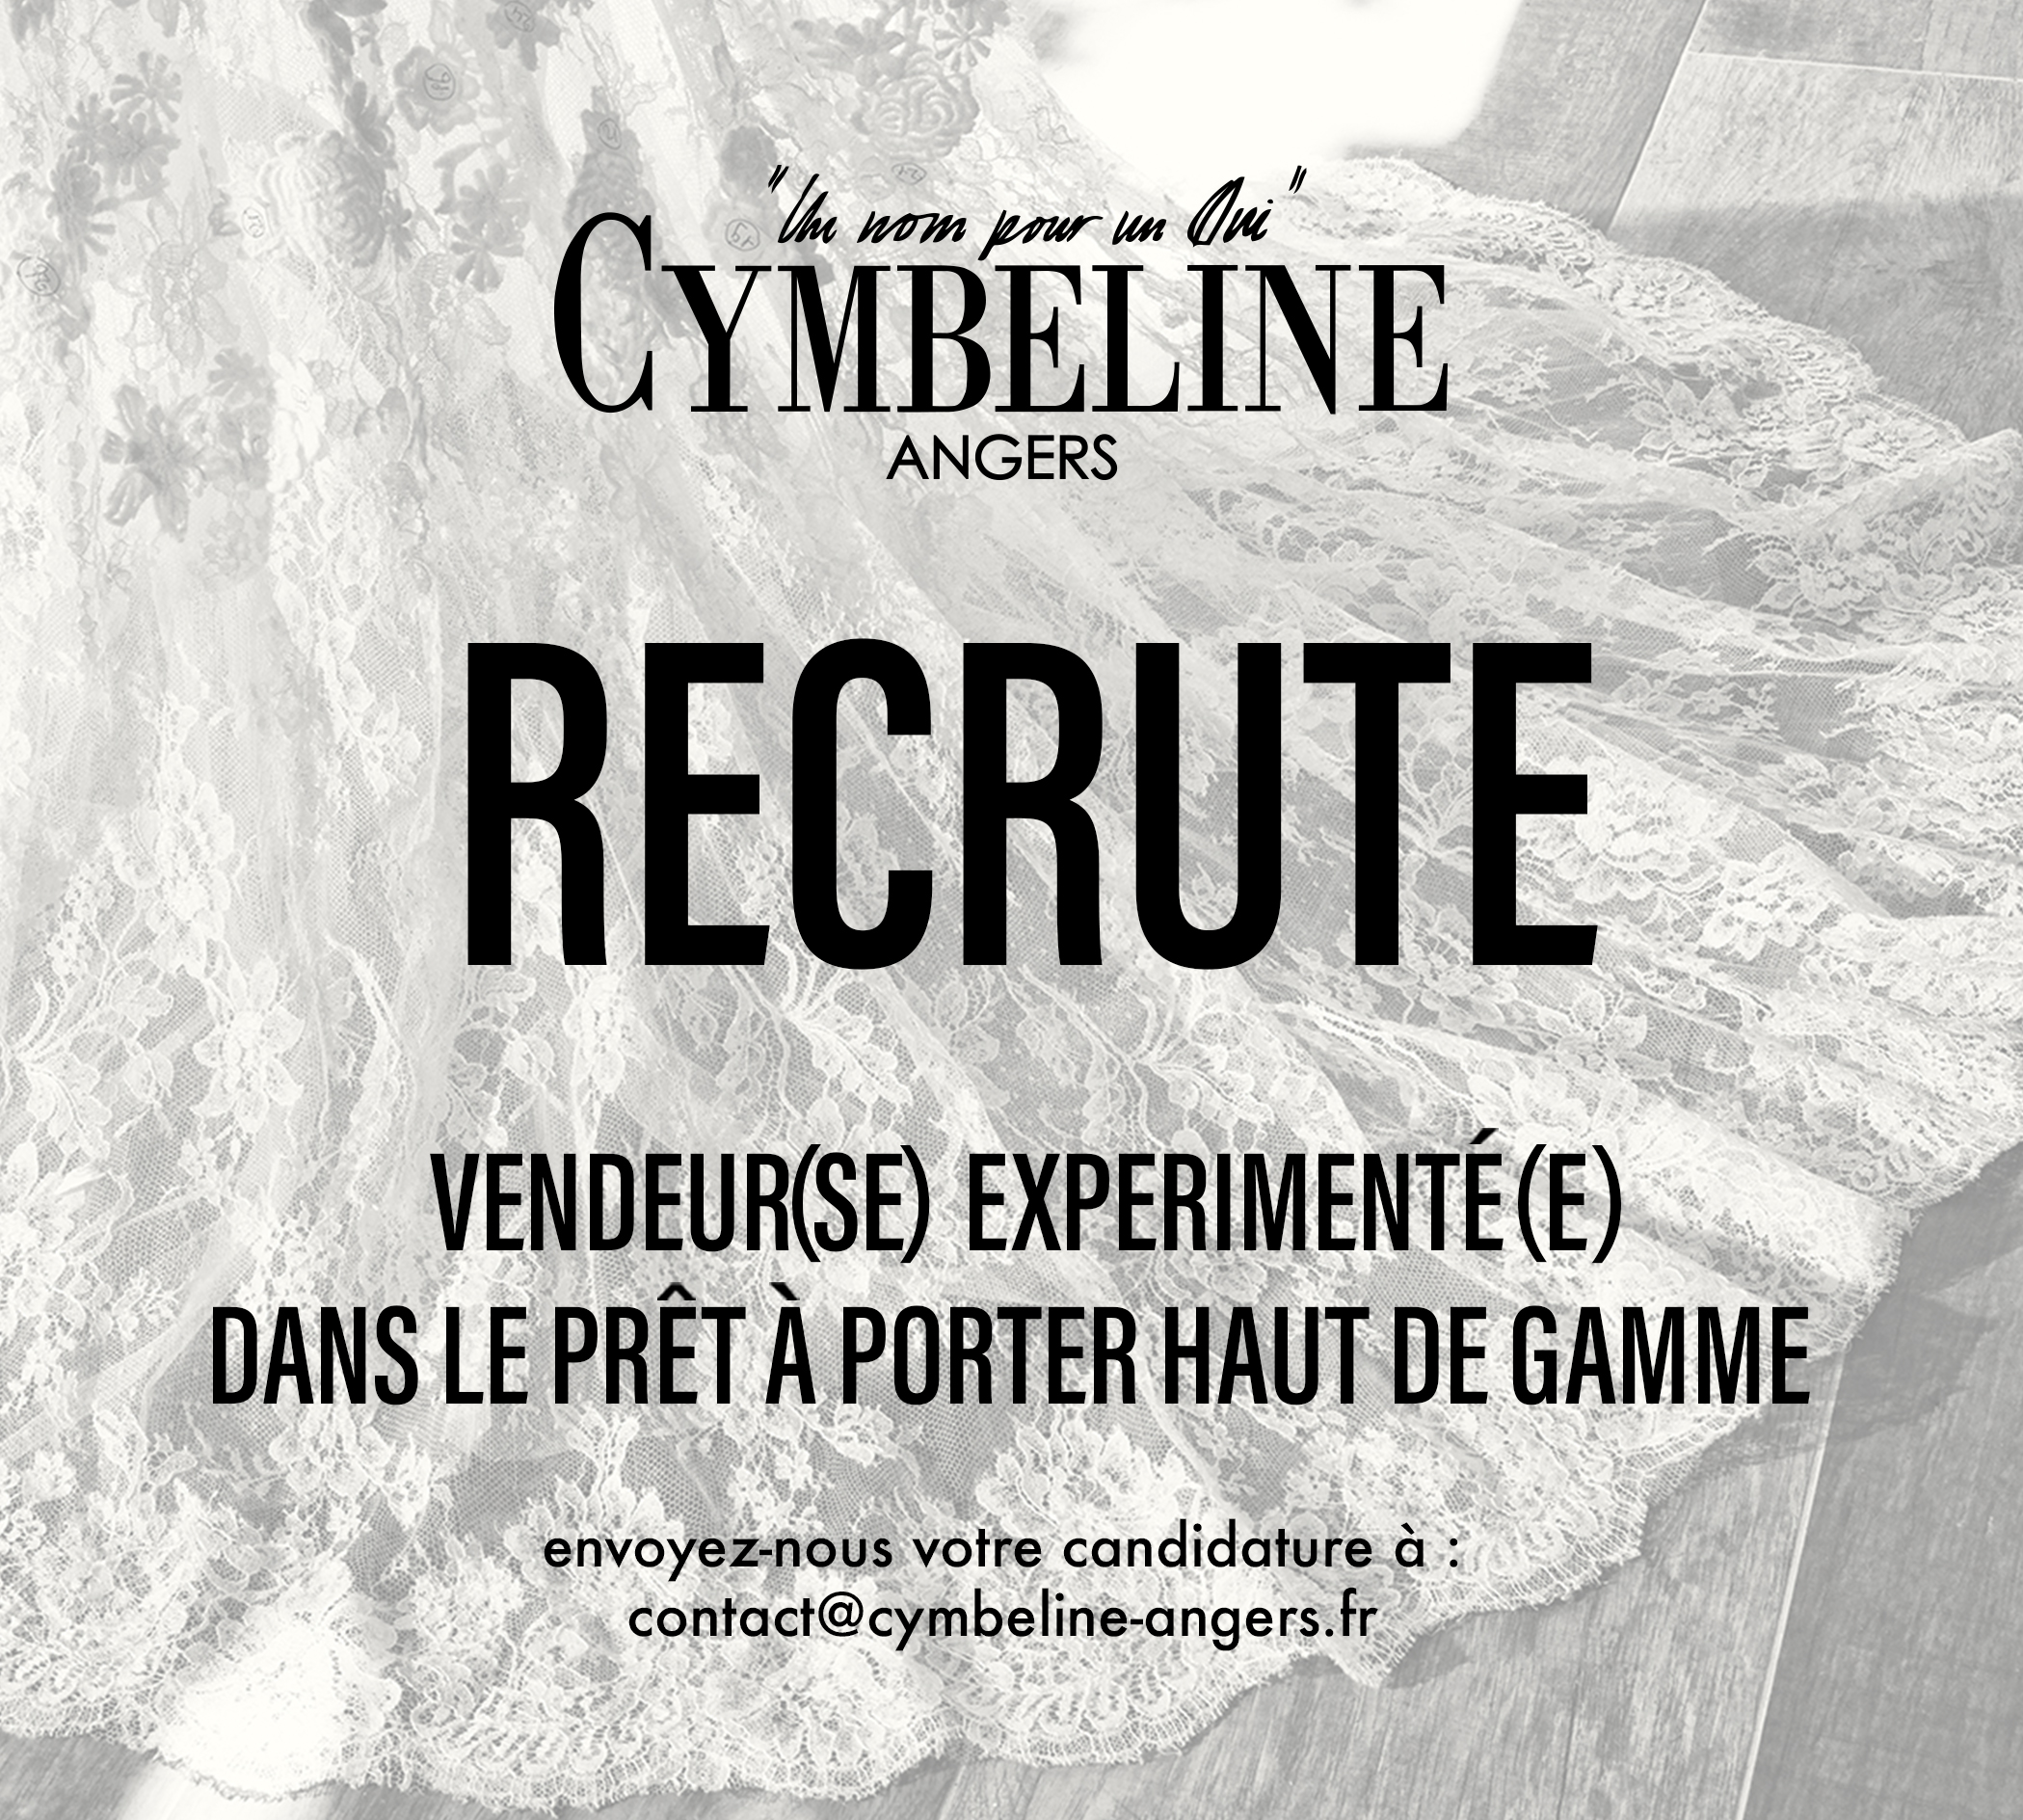 cymbeline-angers-offre-emploi.jpg